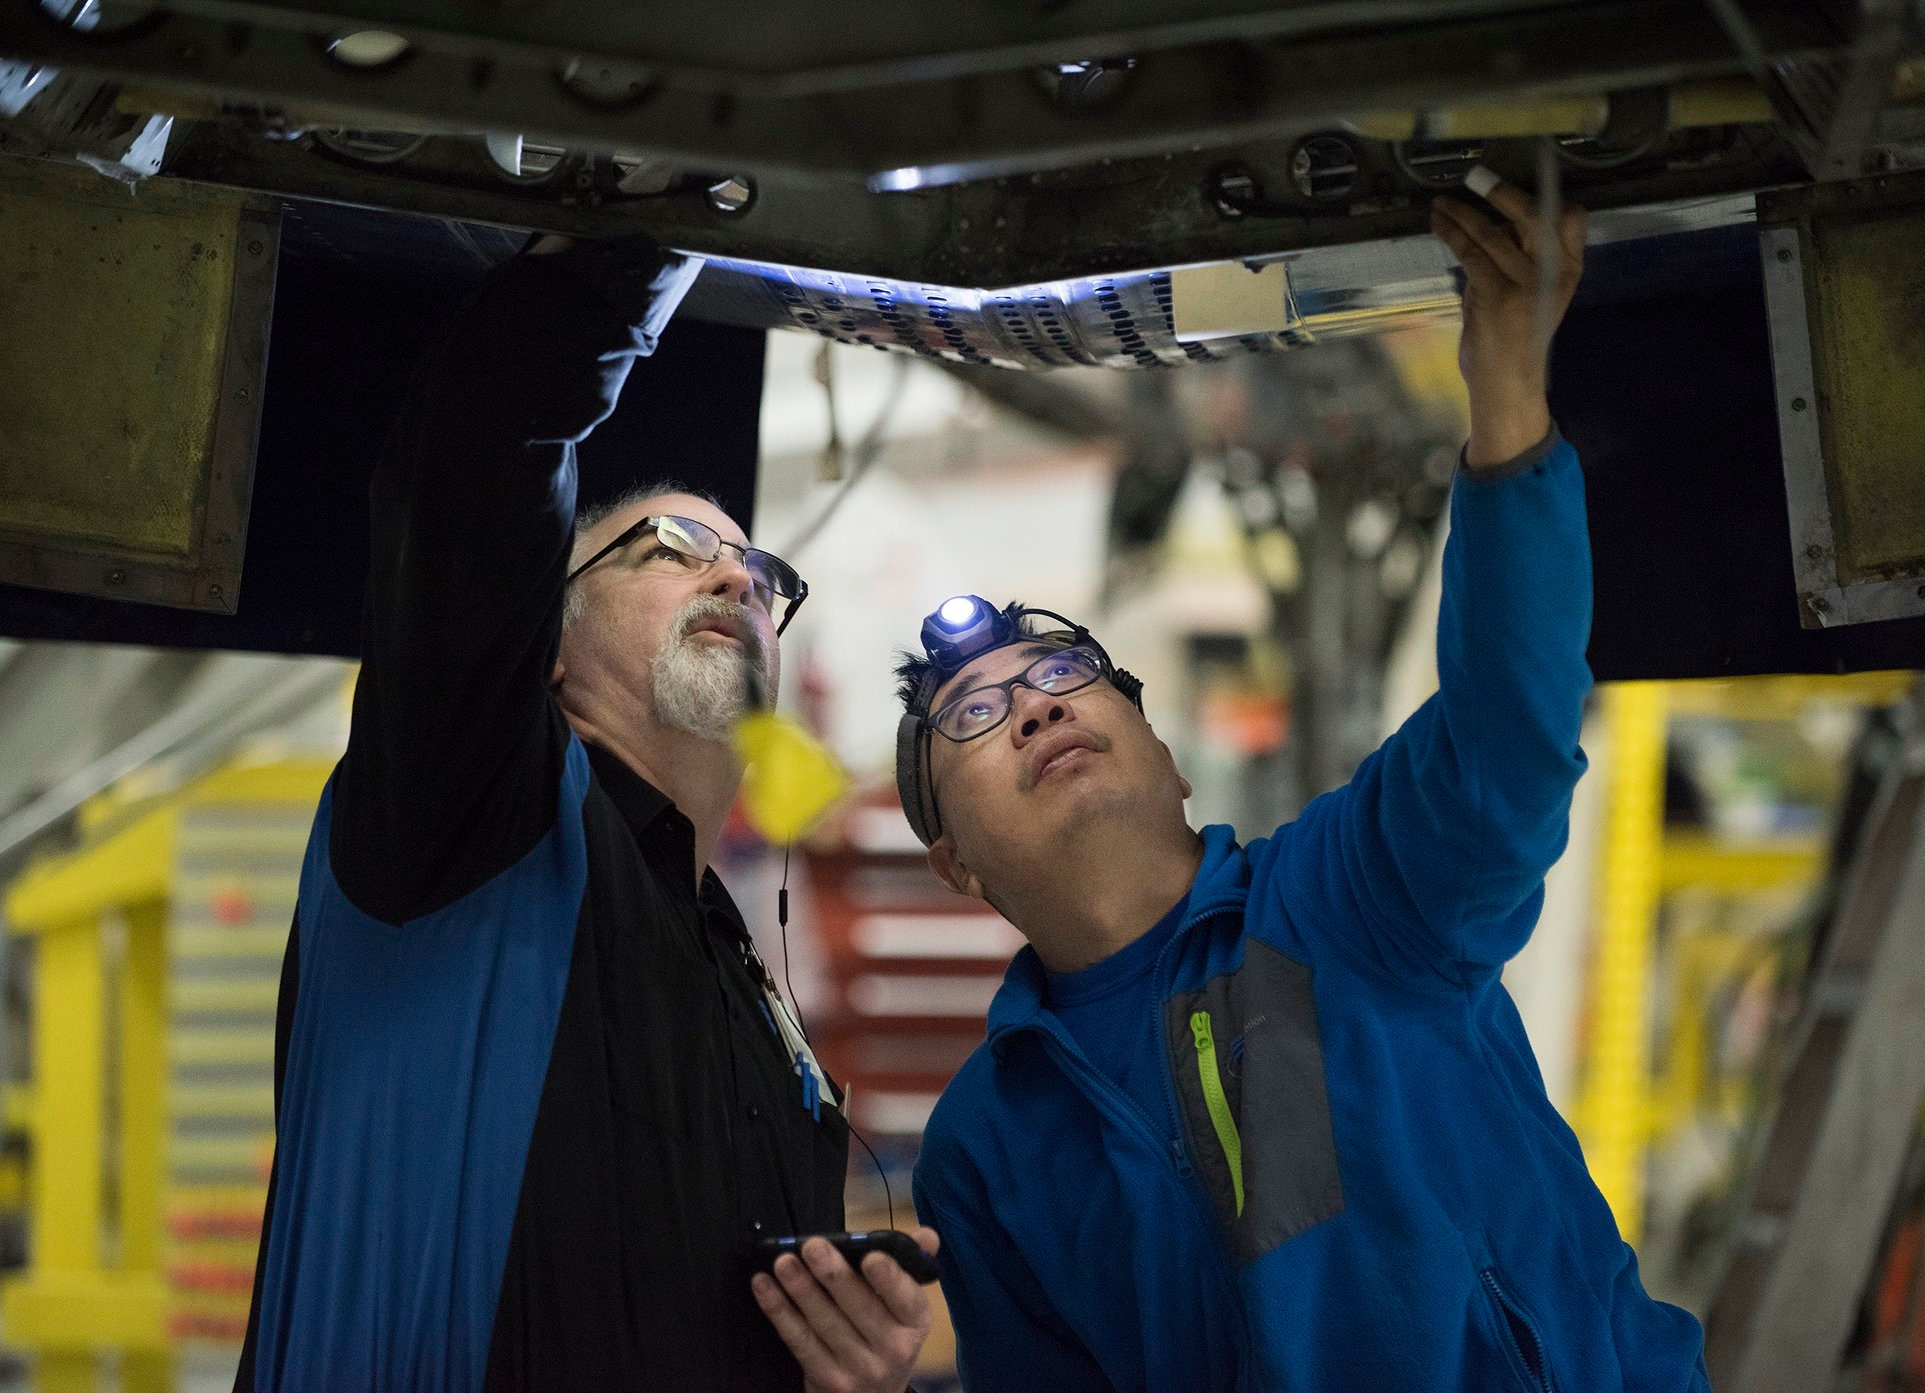 Interior regional aircraft conversion on Embraer aircraft - photo of two technicians looking in a panel on the underside of an aircraft